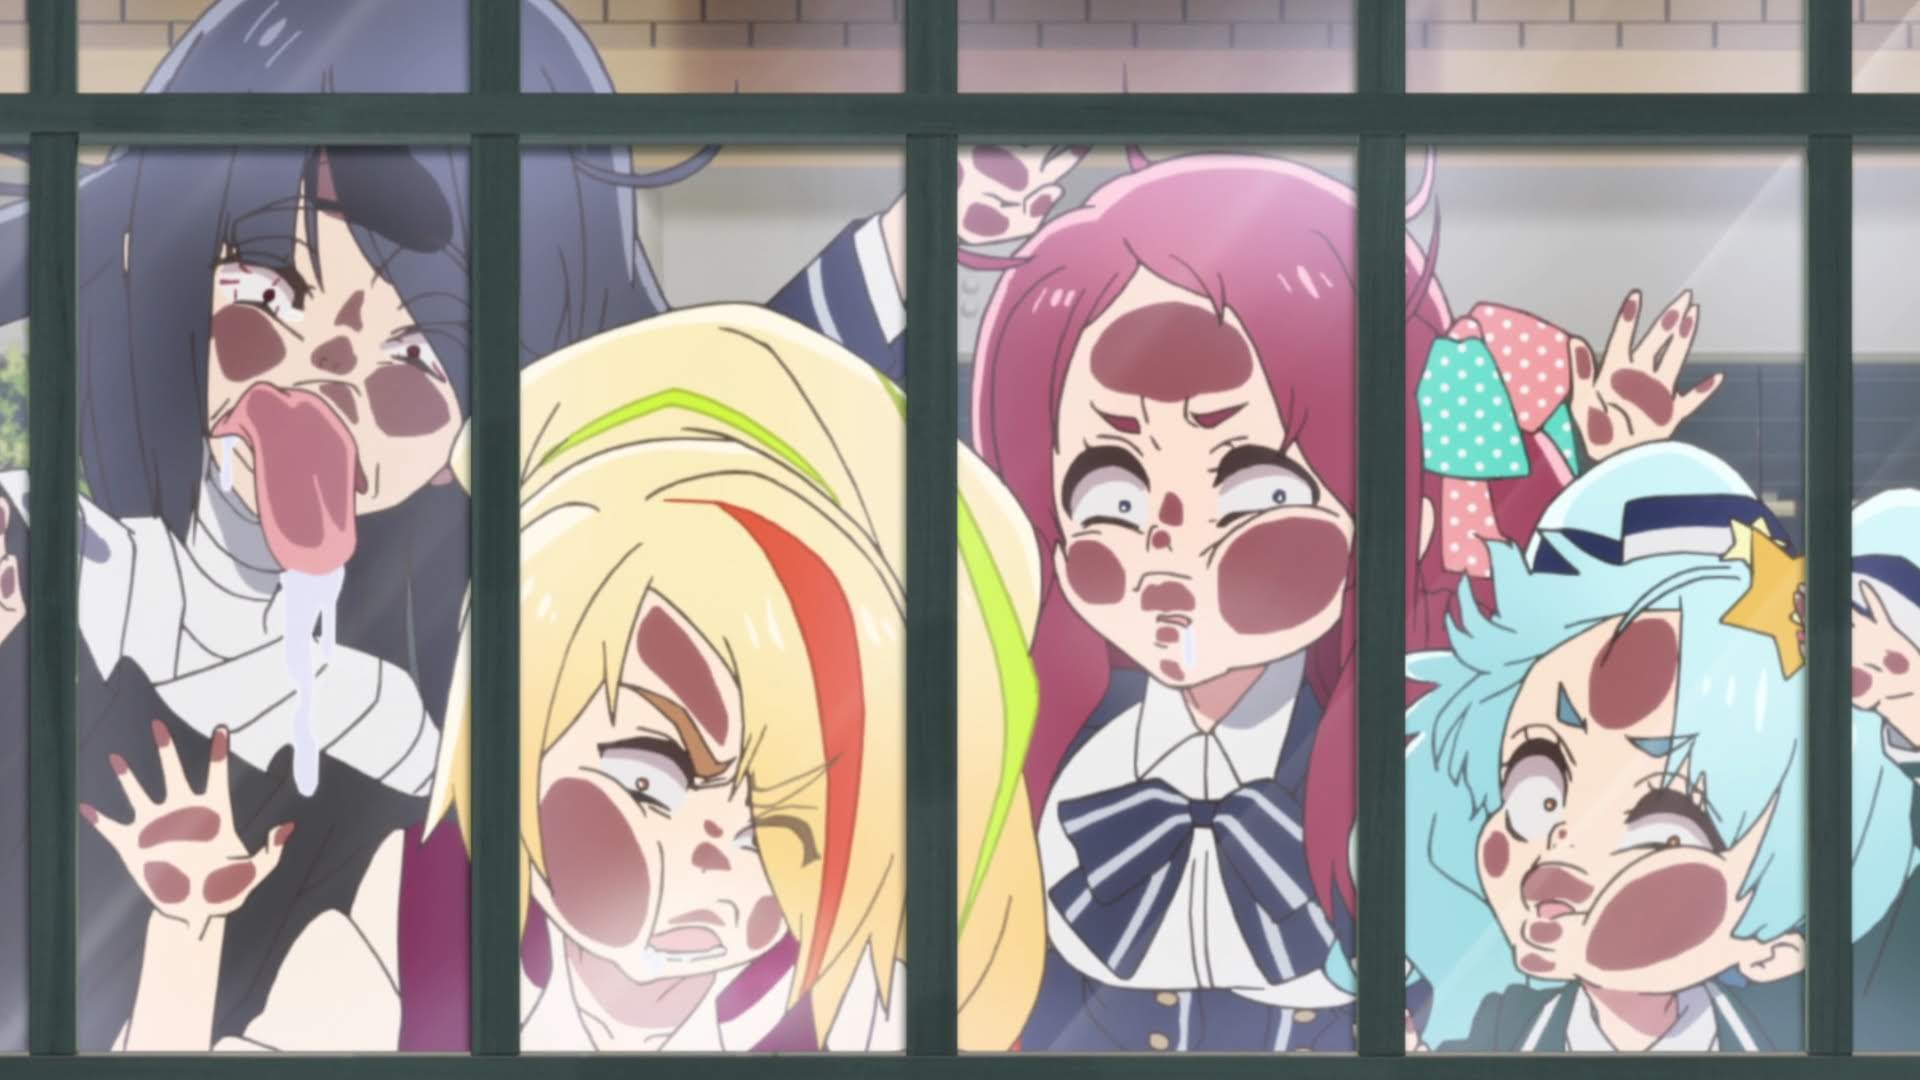 Four of the girls from Zombie Land Saga smashing their faces up against a glass window, peering in at something